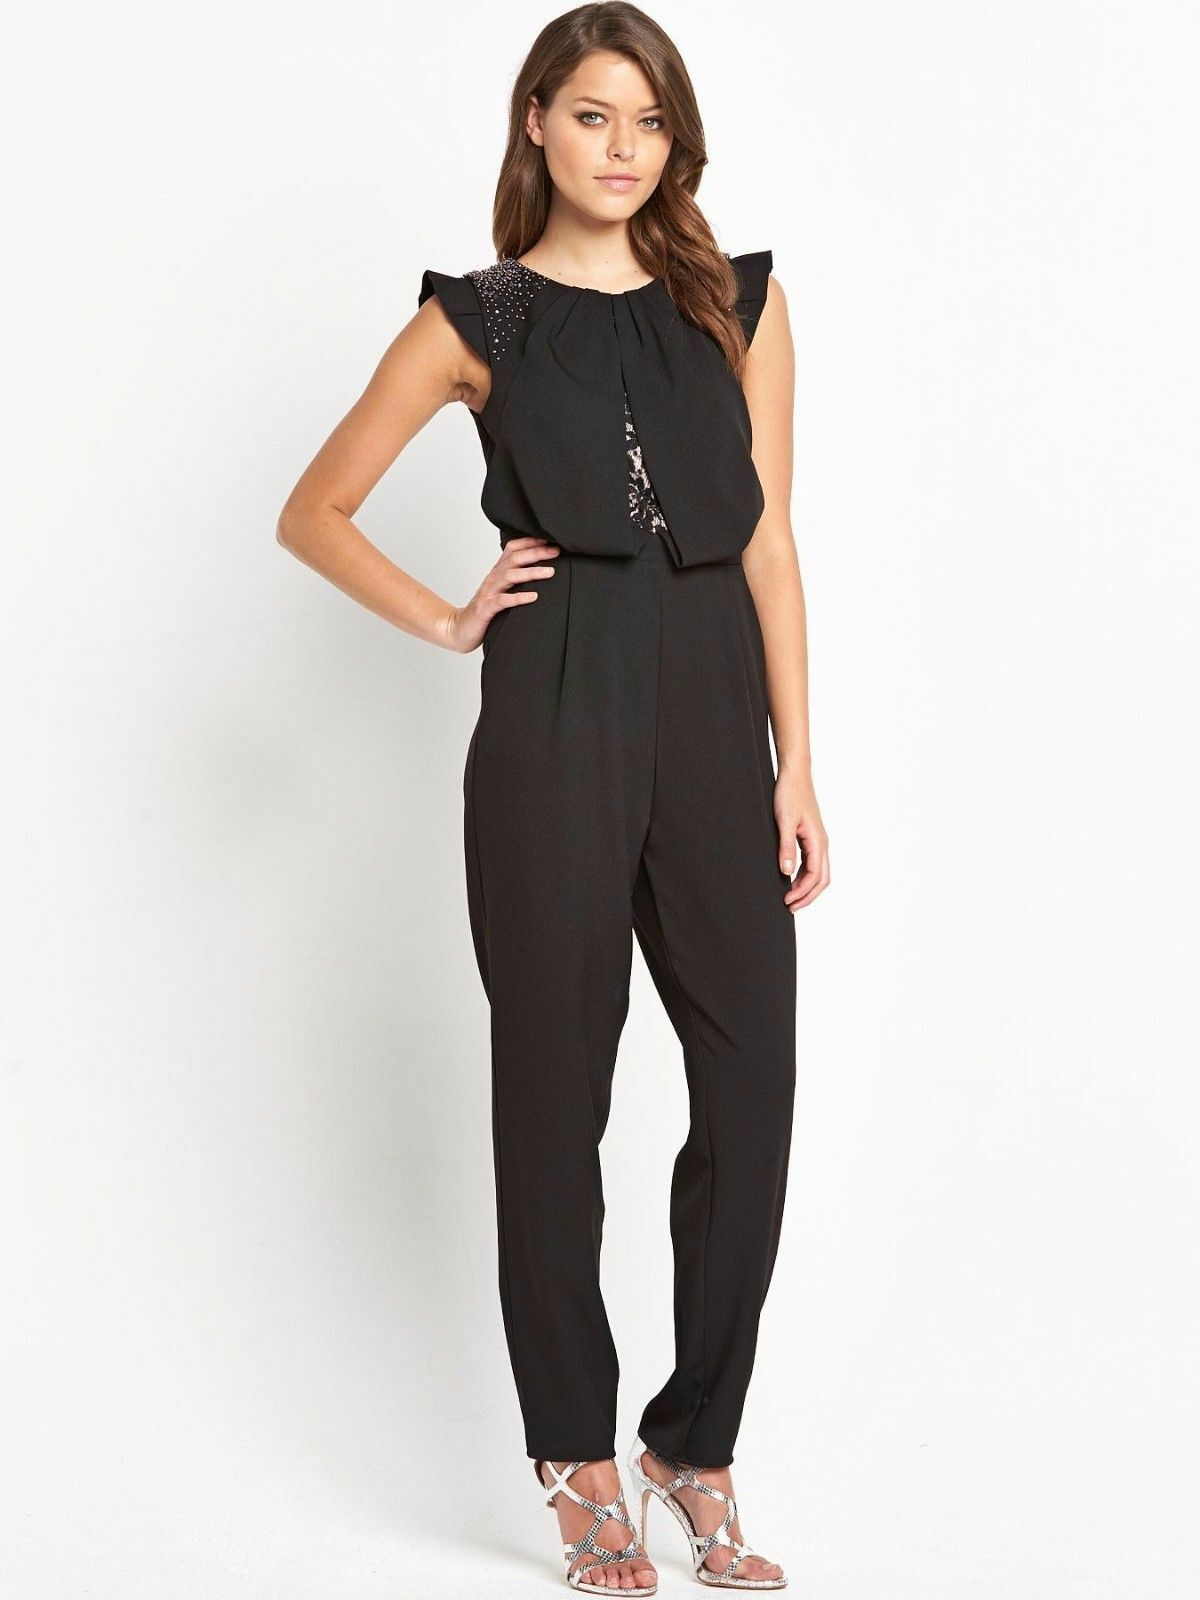 BNWT Little Mistress Frill Sleeve Evening Occasion Jumpsuit Size 10 NEW